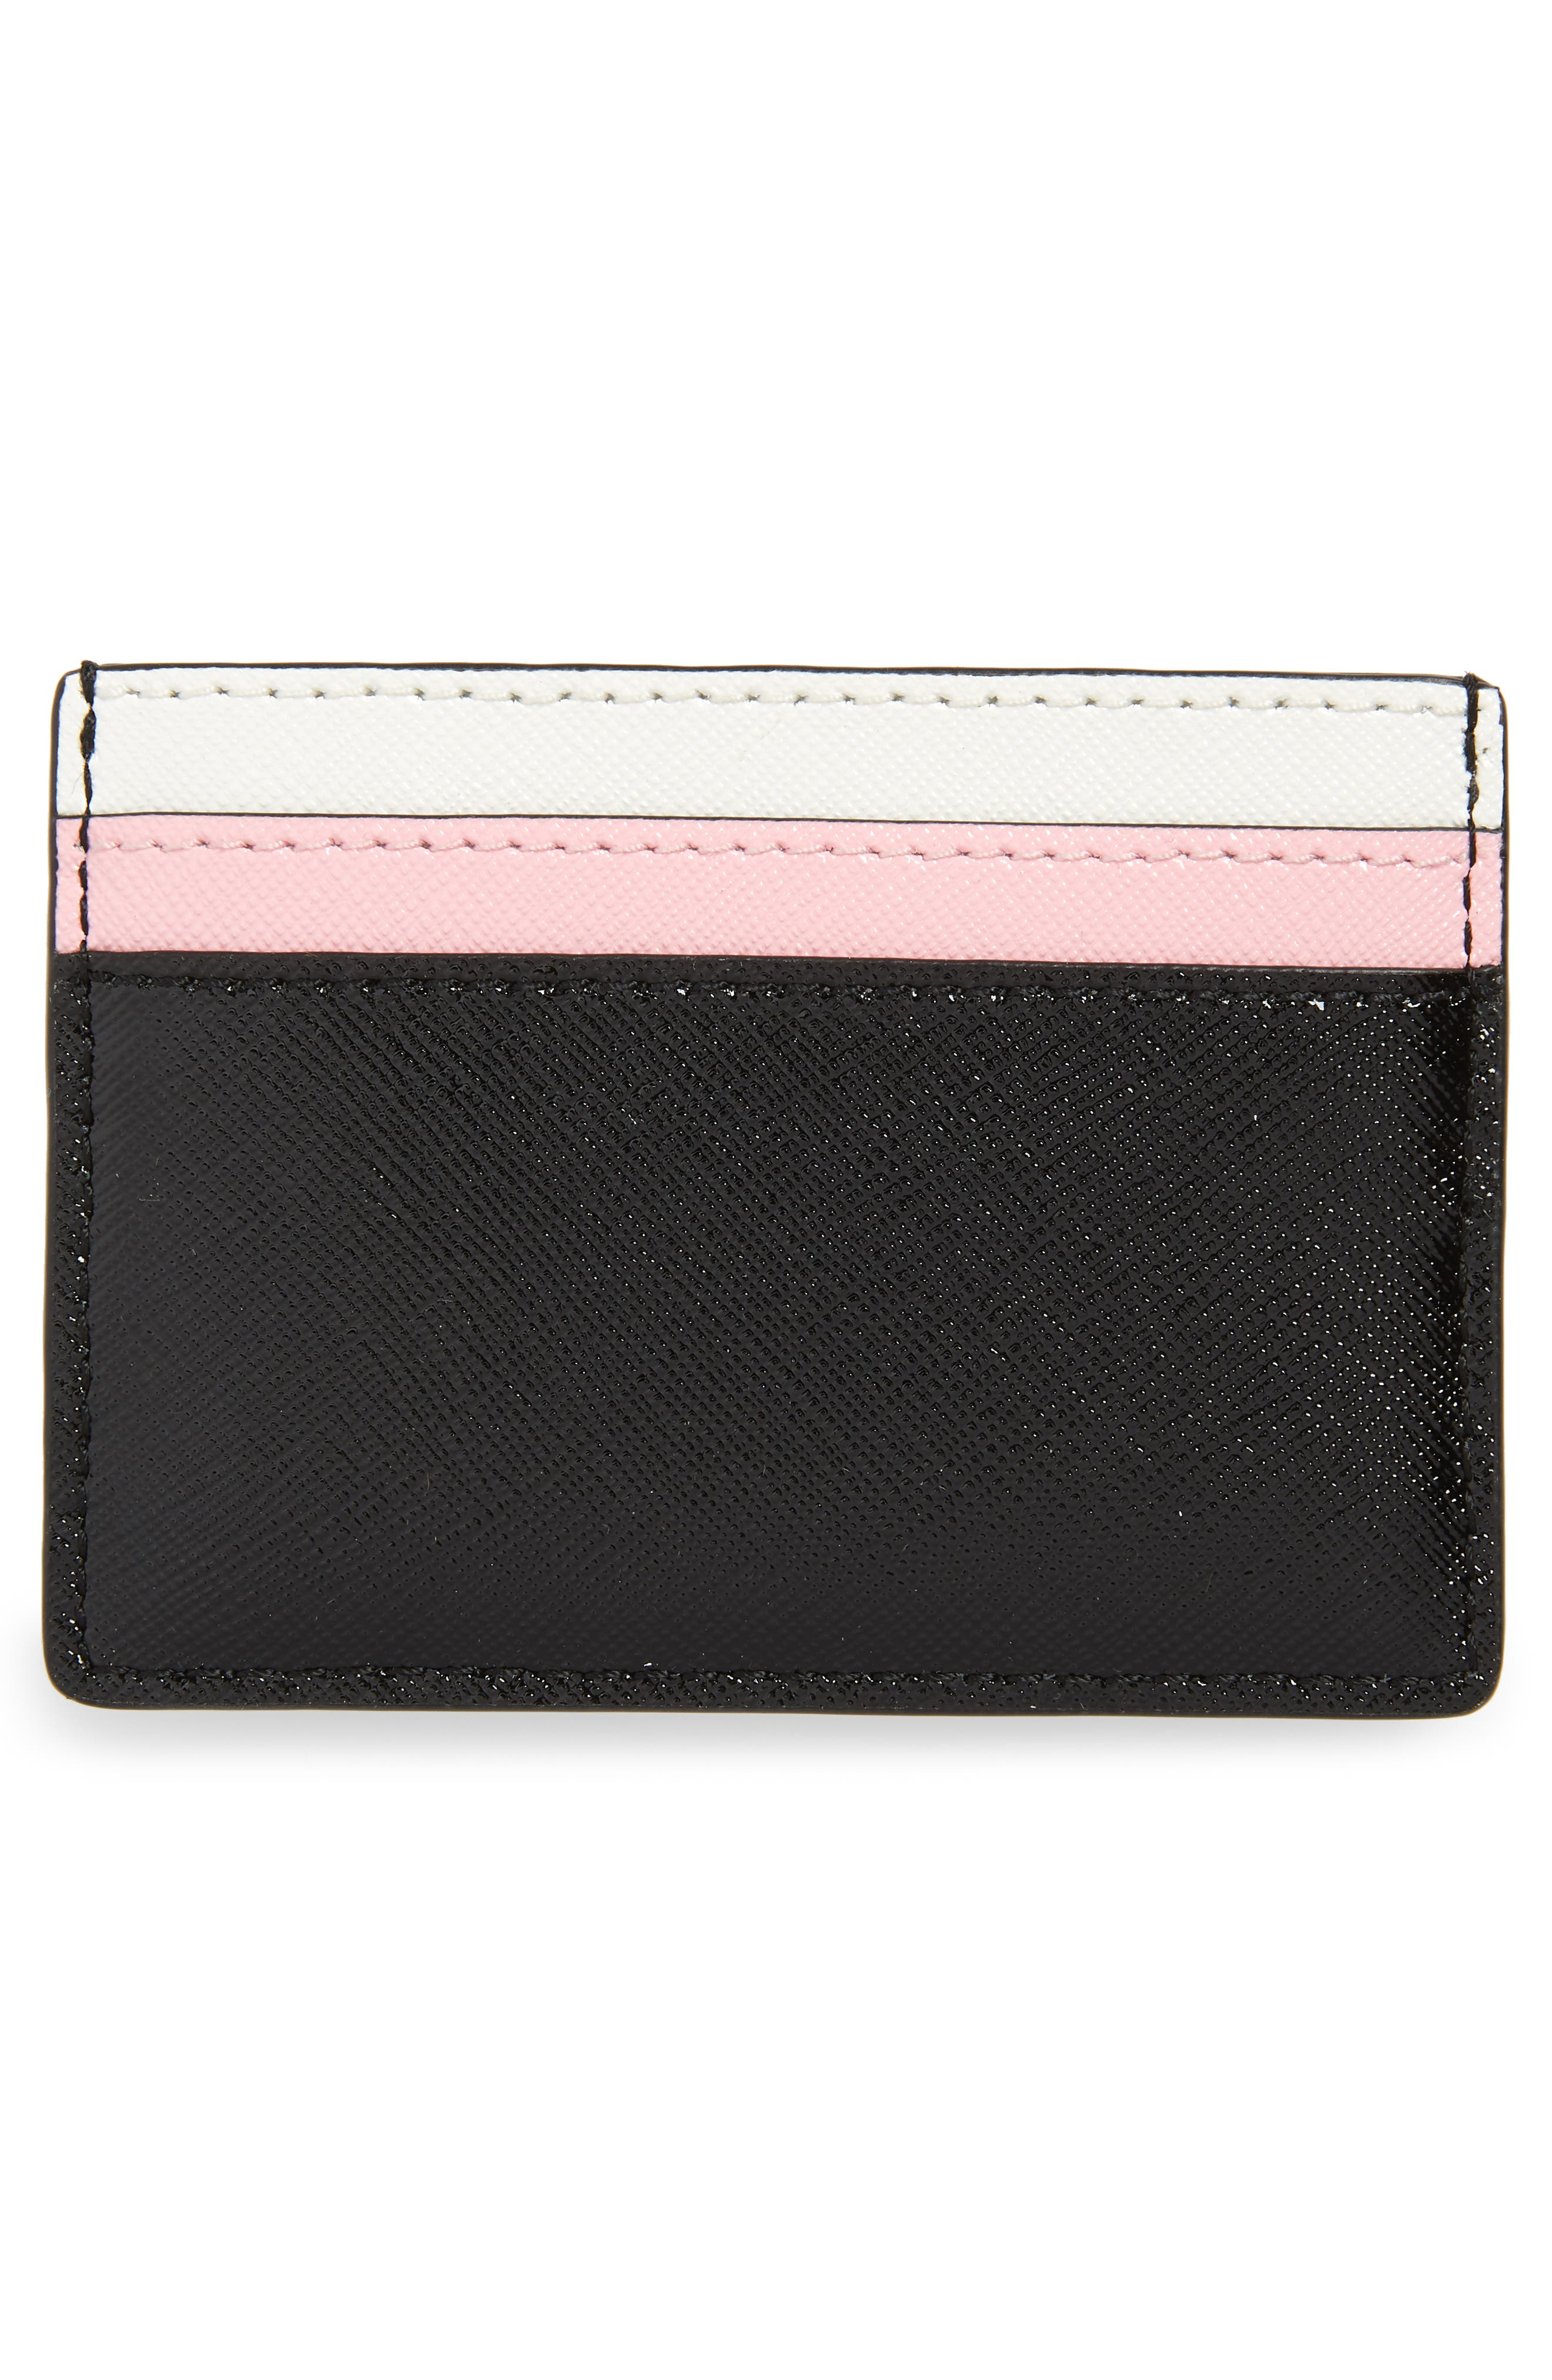 Snapshot Leather Card Case,                             Alternate thumbnail 2, color,                             Black/ Baby Pink